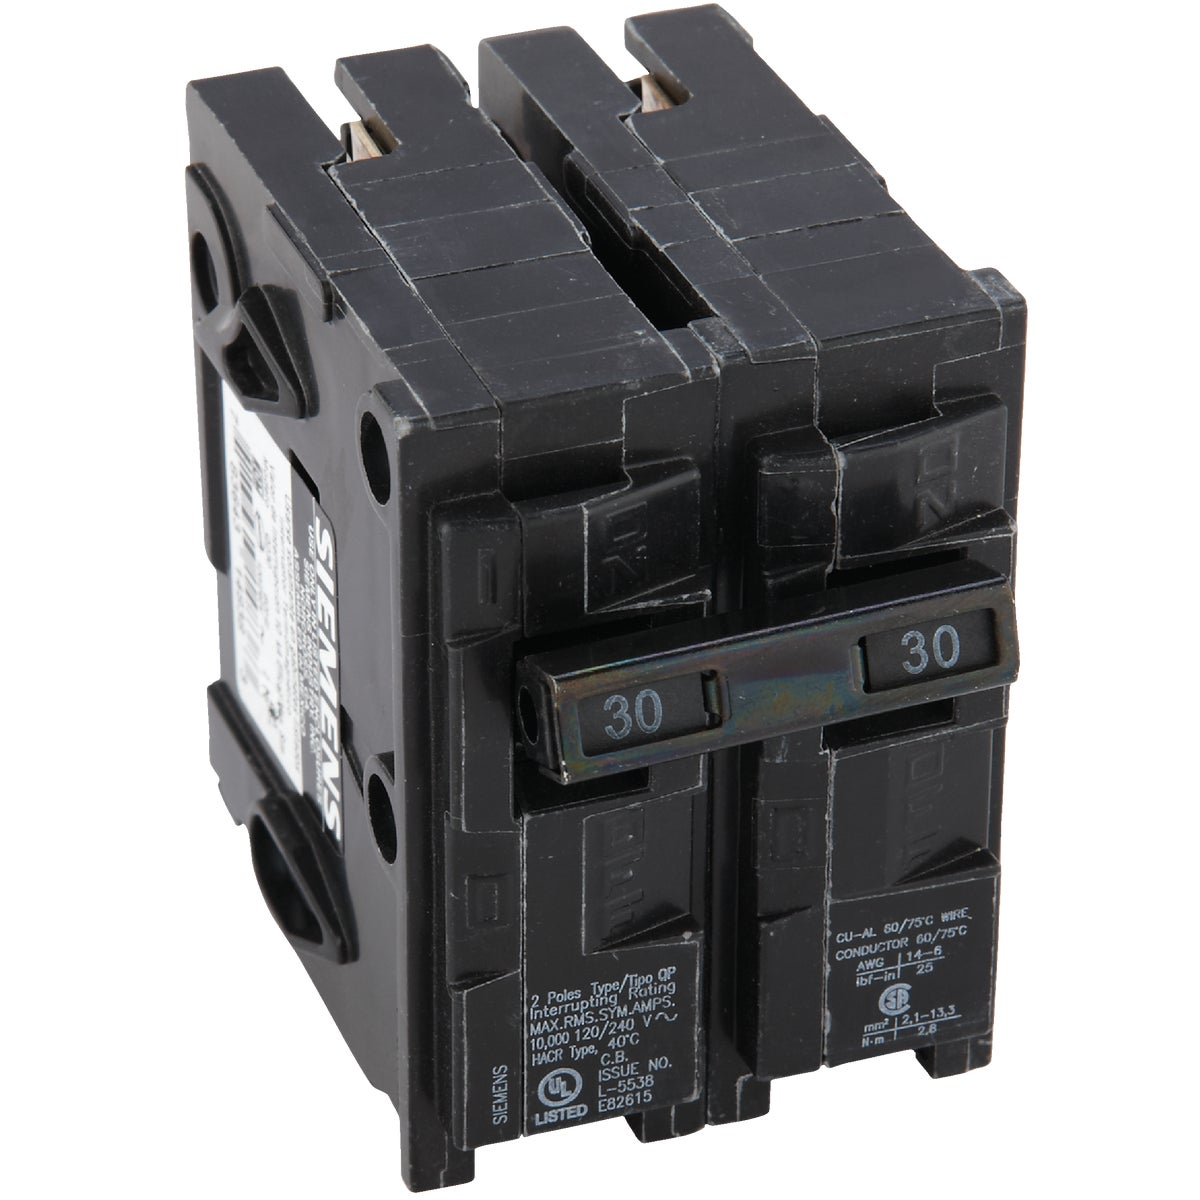 30A 2P CIRCUIT BREAKER - Q230 by Connecticut Electric